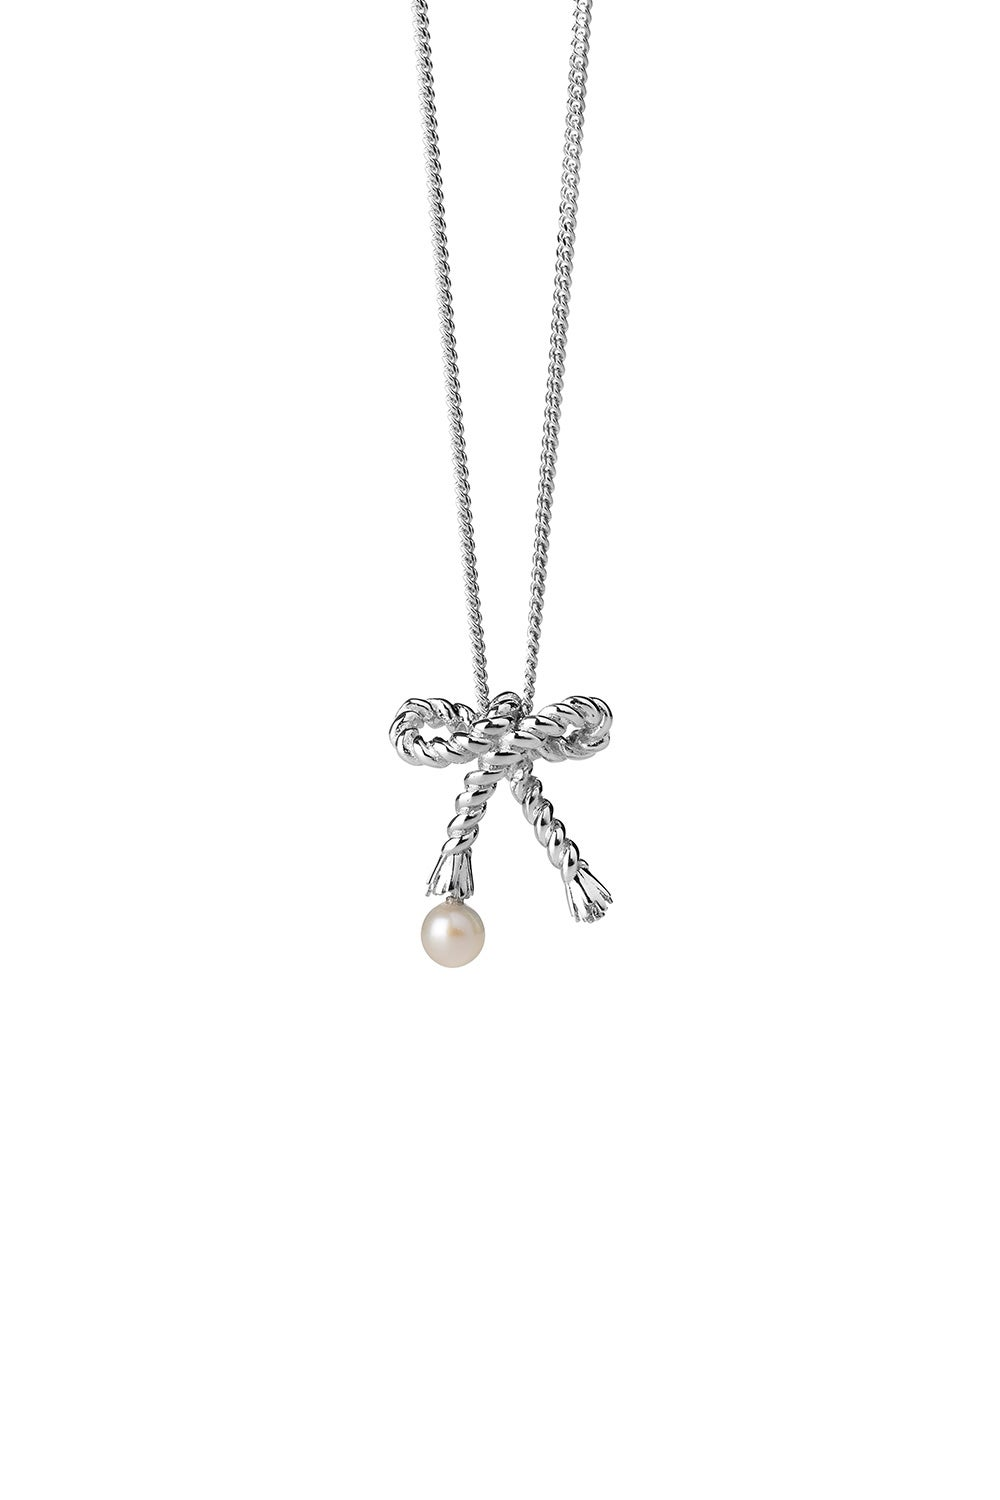 Love Knot Necklace Silver